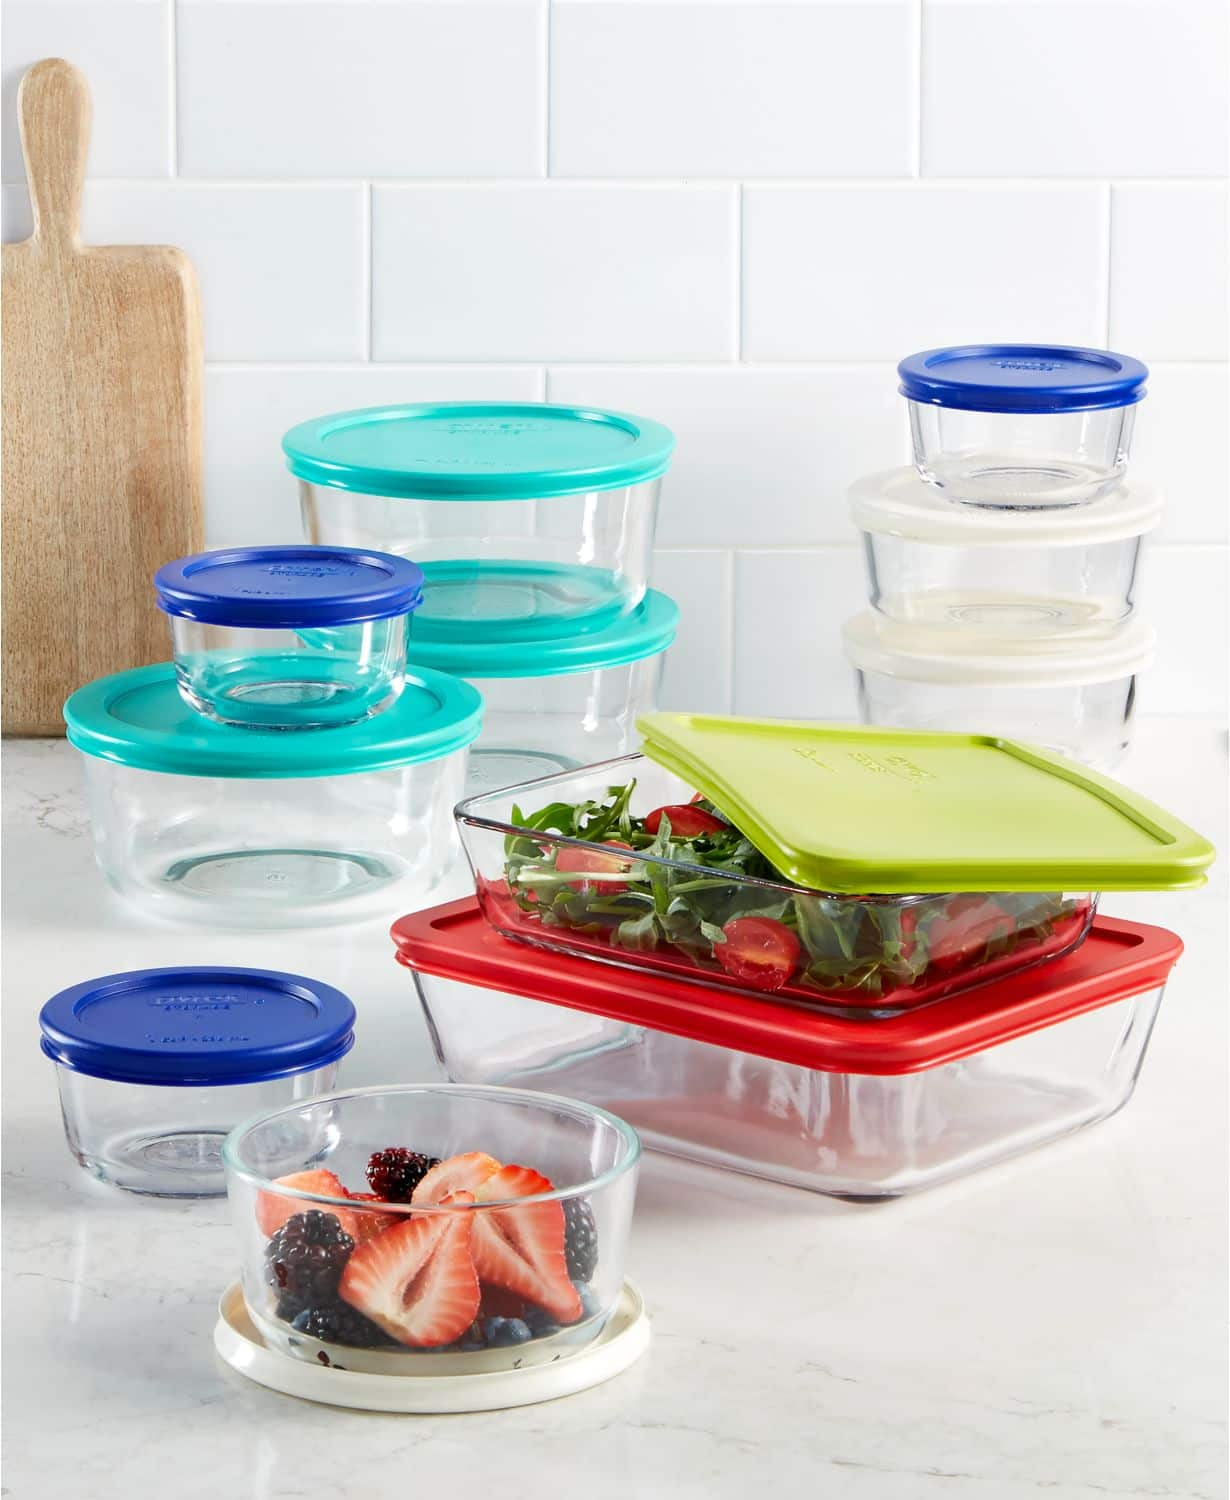 22-Piece Pyrex Food Storage Container Set $30 + Free Shipping